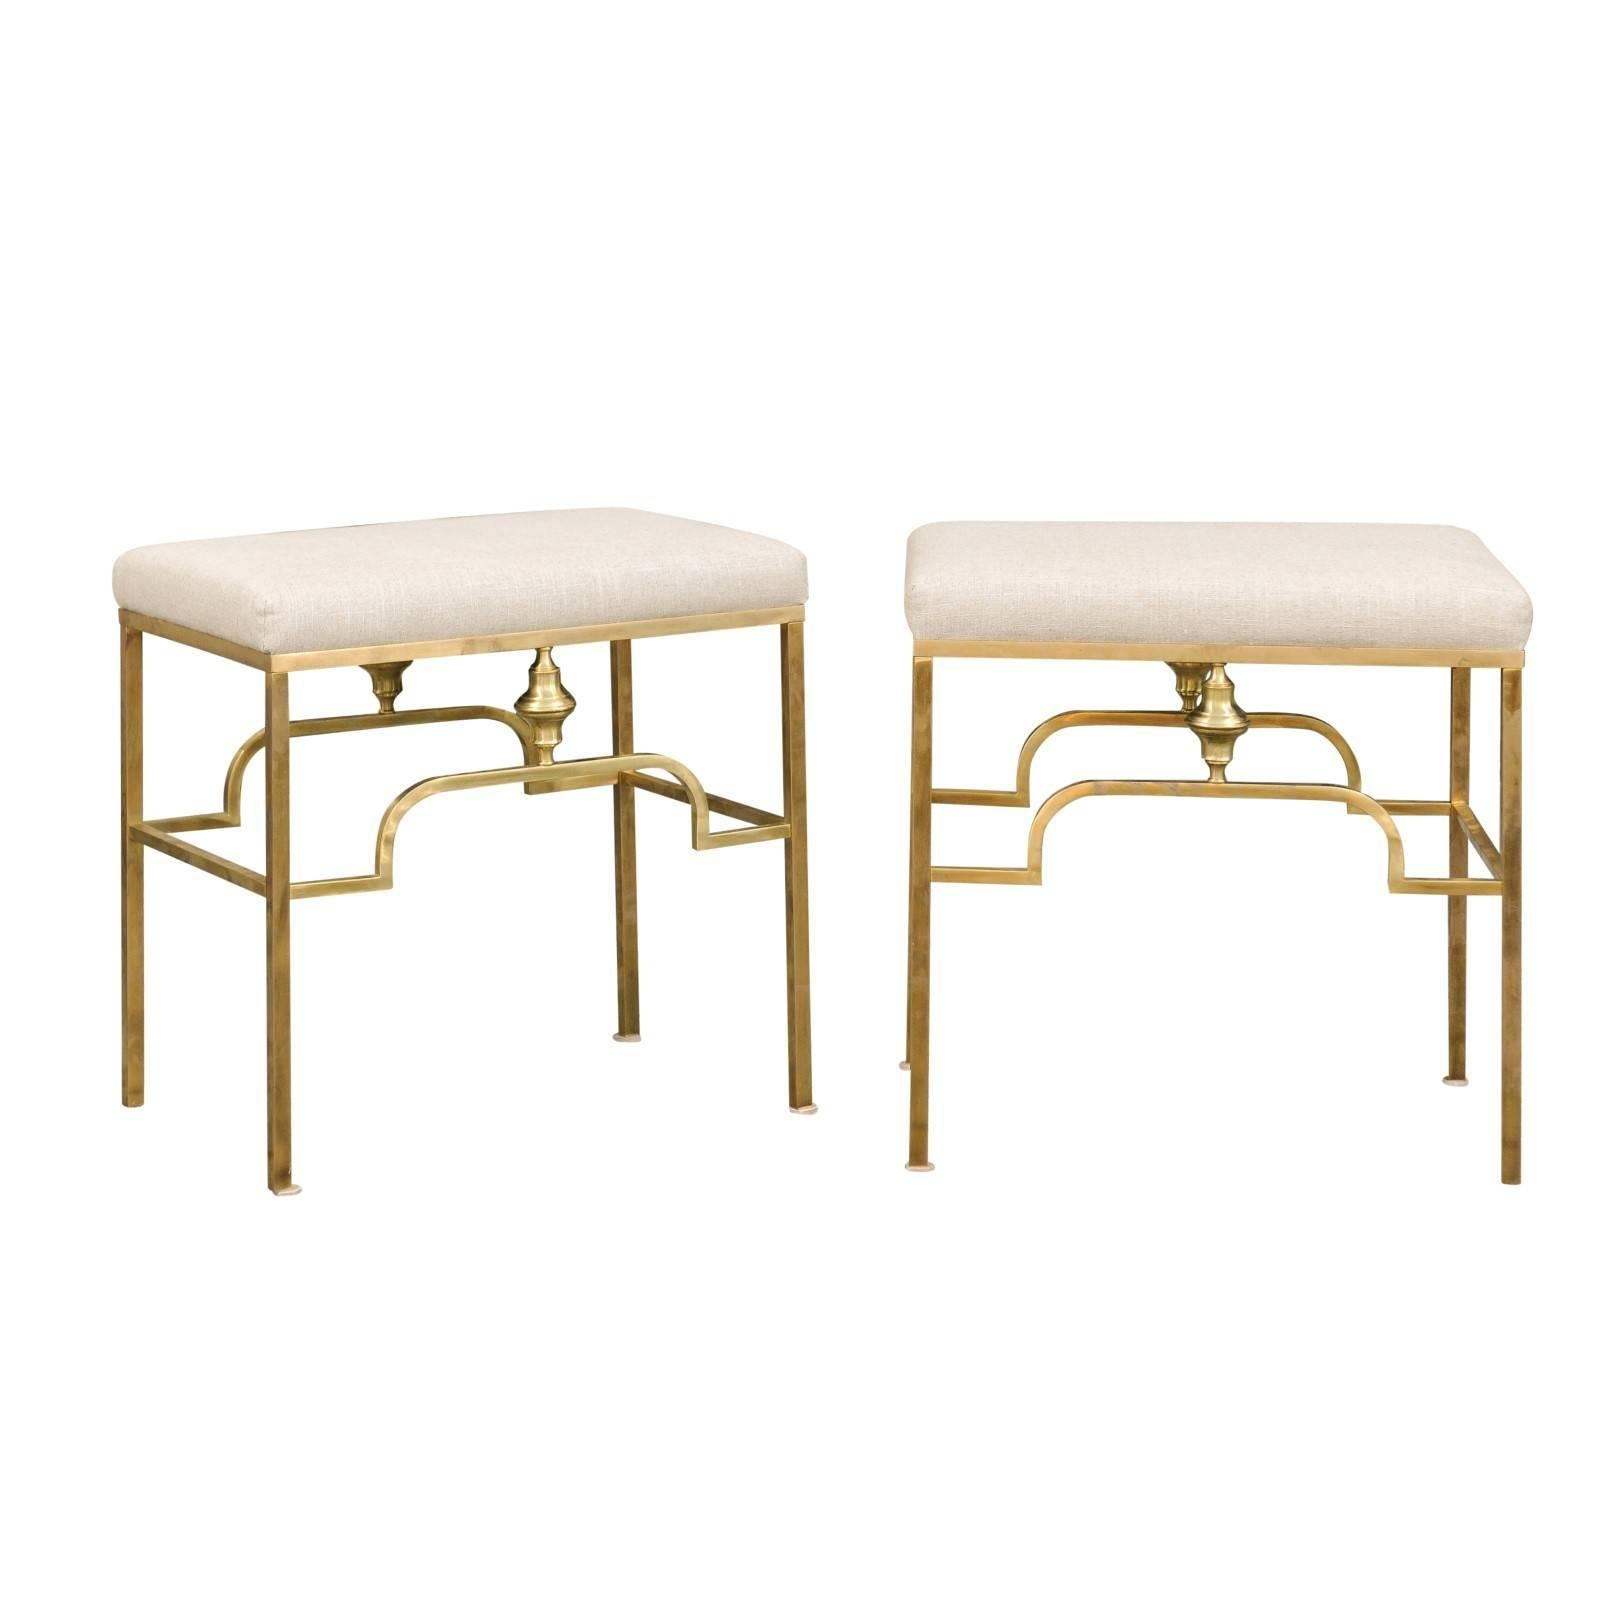 Pair of Midcentury Italian Stools with Brass Armature and Upholstered Seats